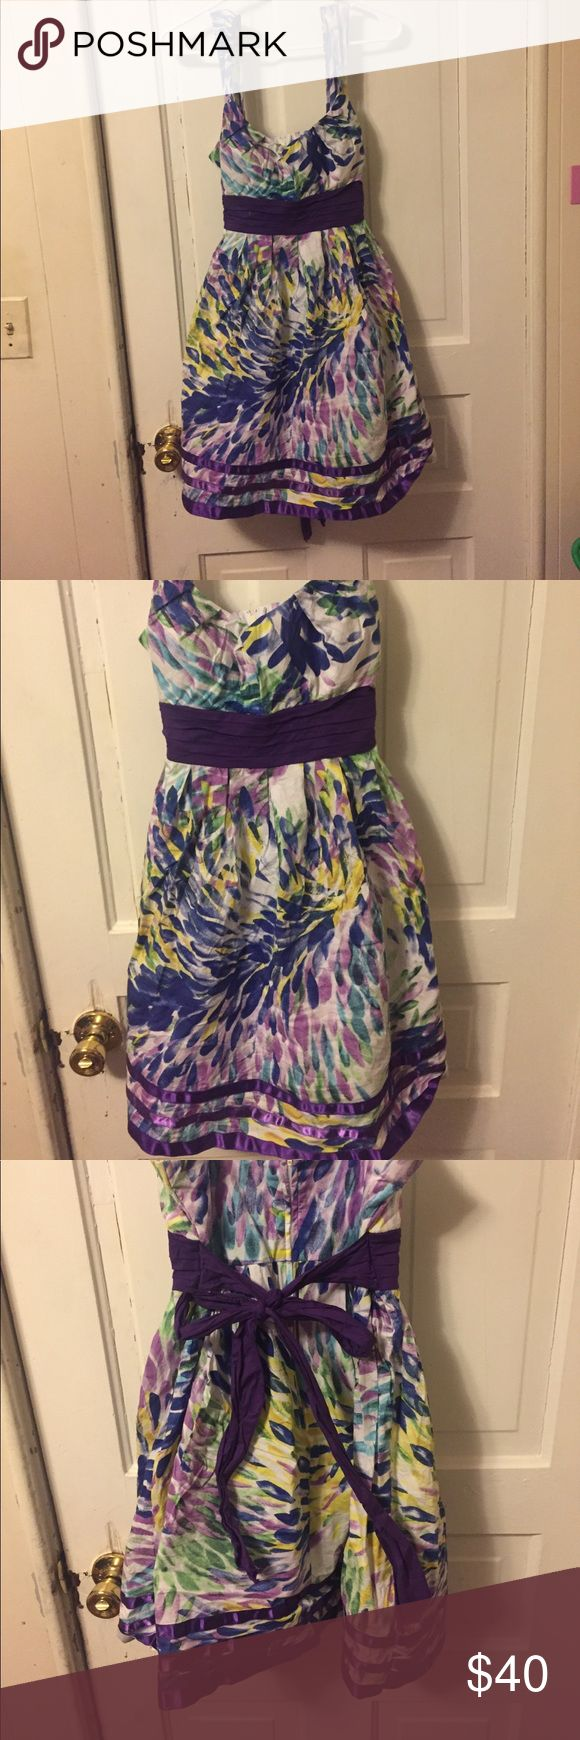 A beautiful multi colored party dress!🎀 Main color is purple. With blue green and yellow. Has a lace underneath. Tie back. Zip up. Dresses